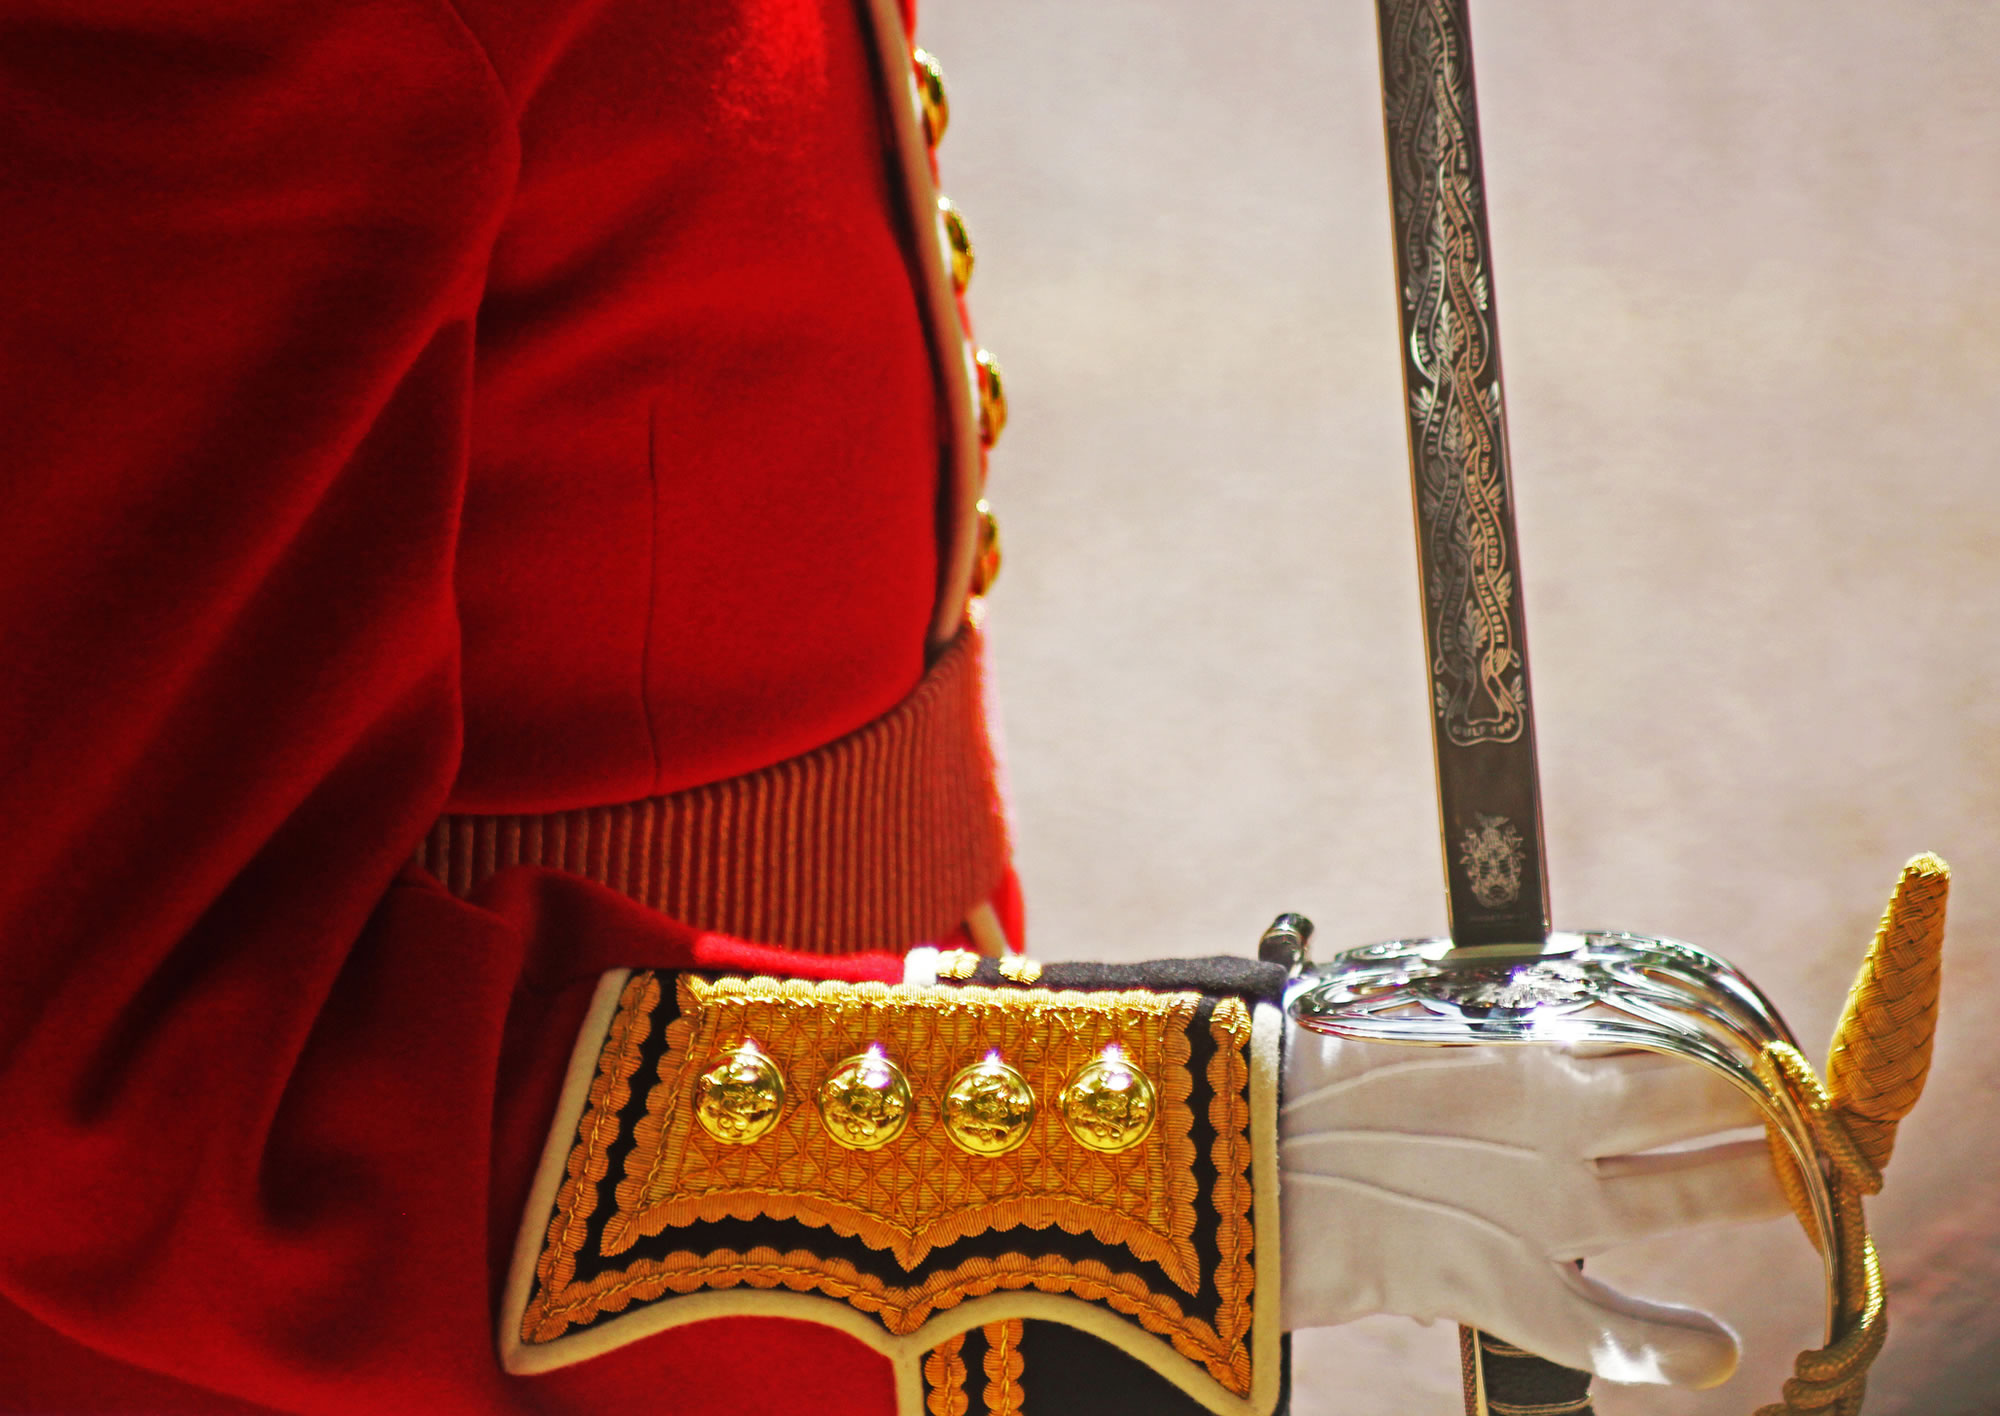 See 'Trooping the Colour' at Horse Guards Parade